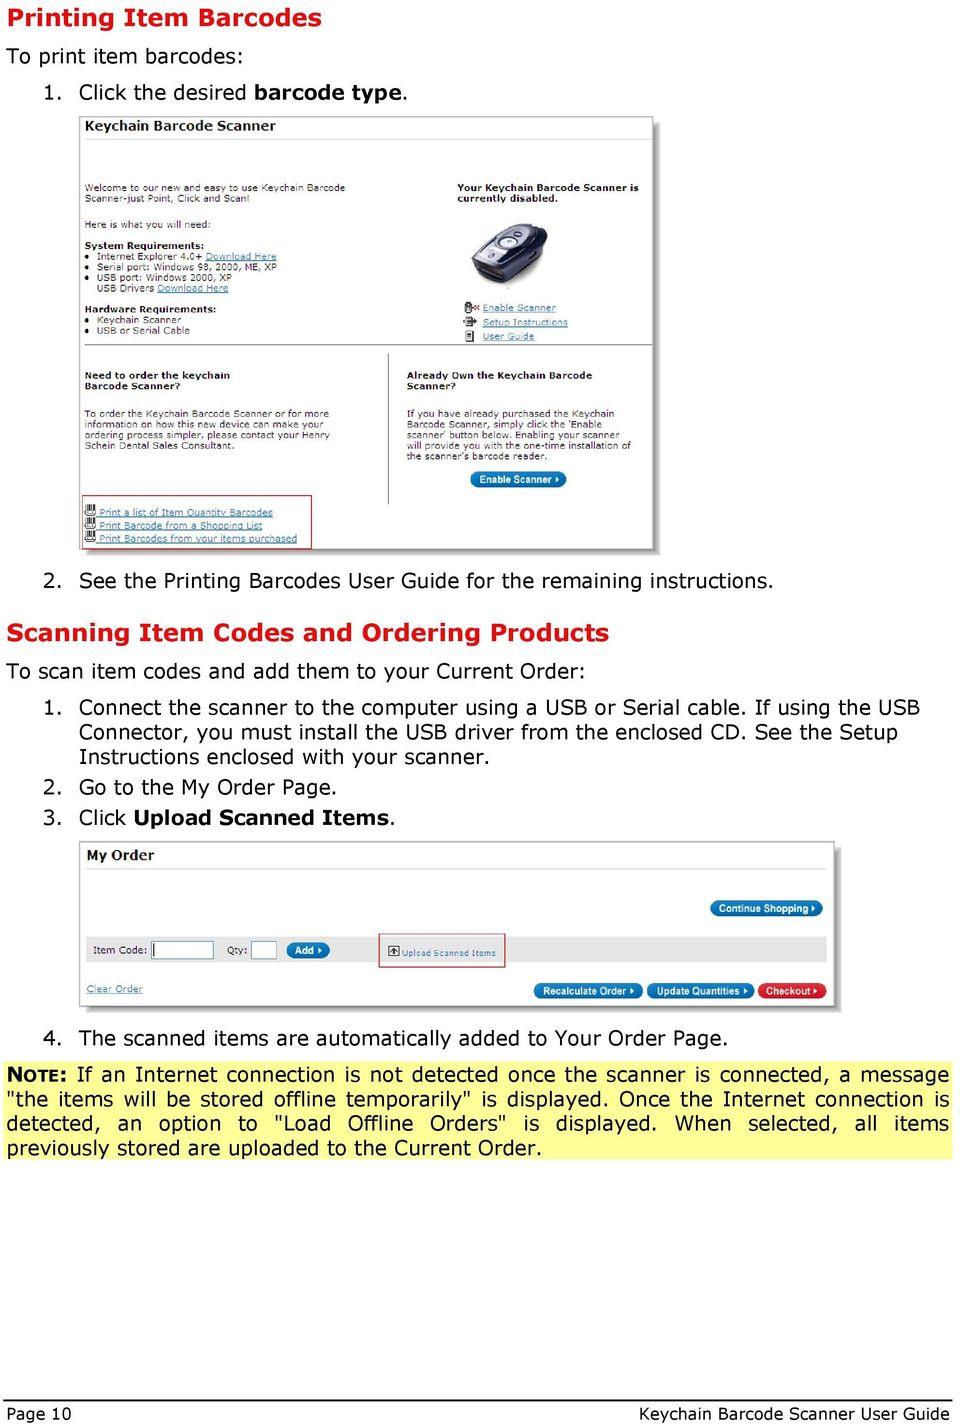 If using the USB Connector, you must install the USB driver from the enclosed CD. See the Setup Instructions enclosed with your scanner. 2. Go to the My Order Page. 3. Click Upload Scanned Items. 4.